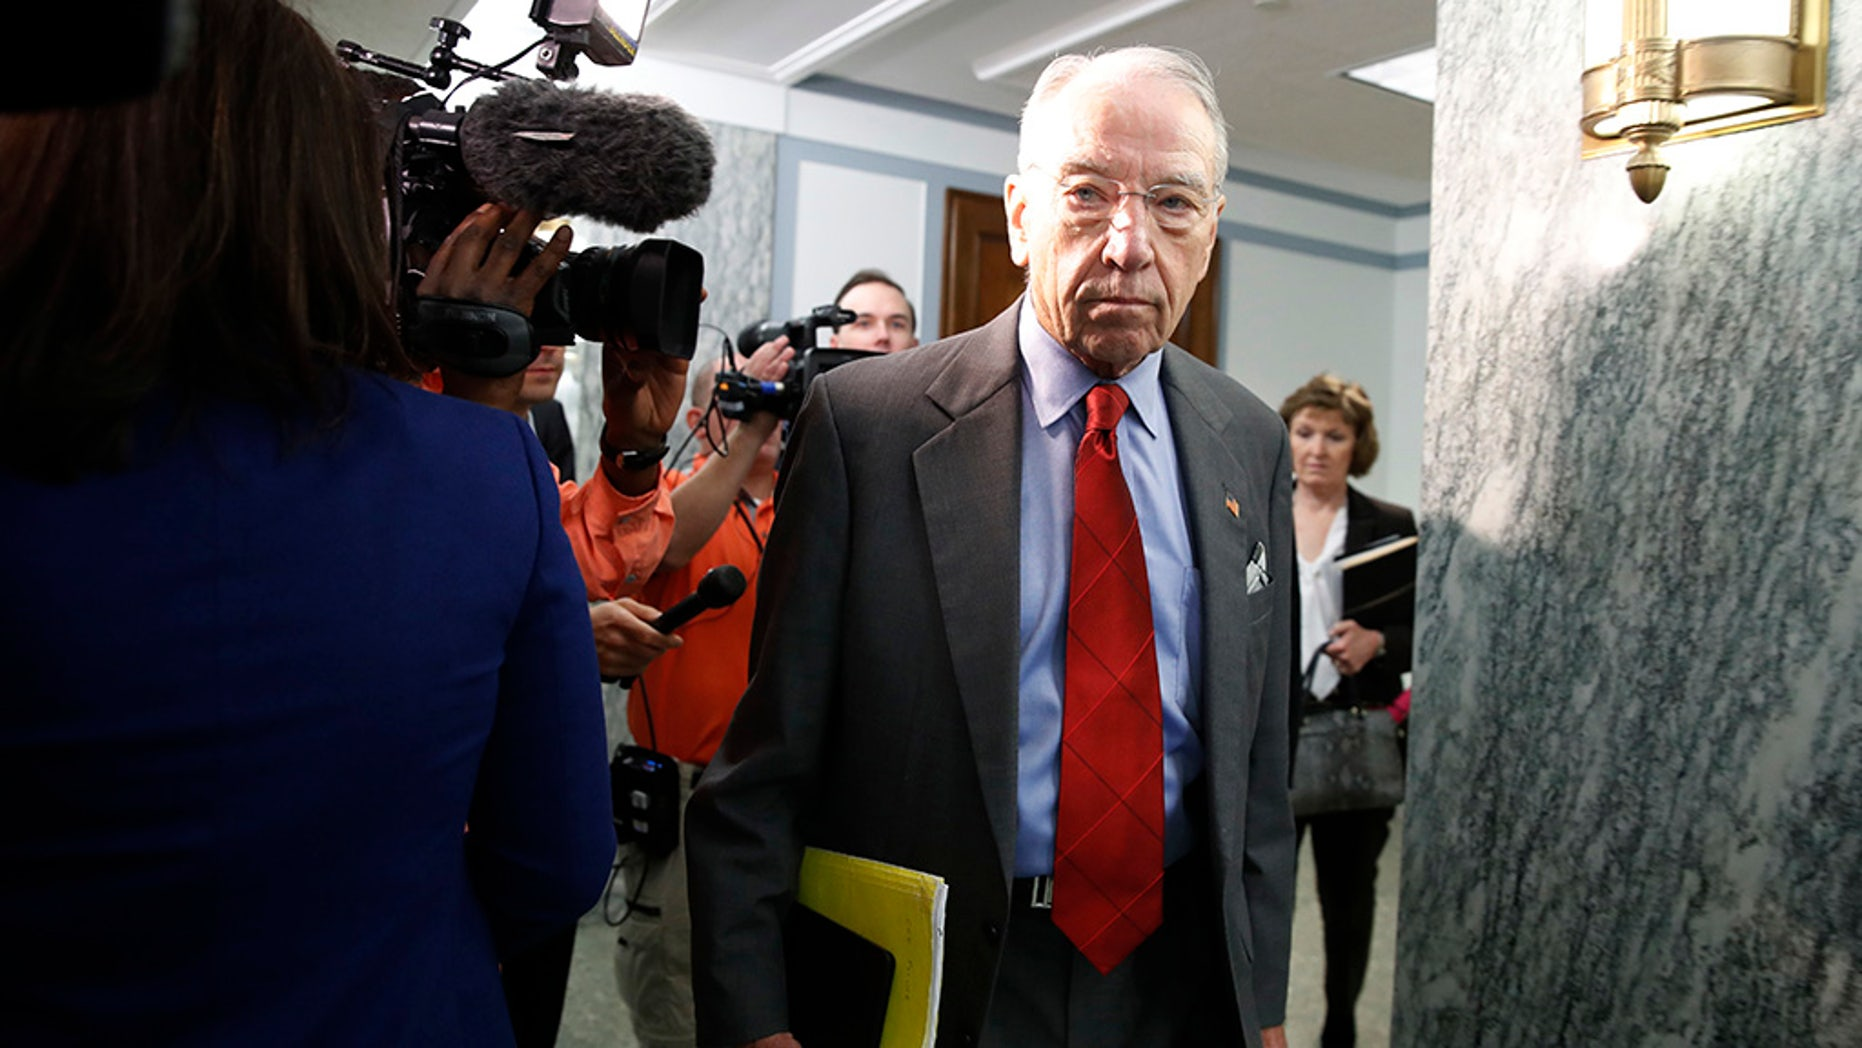 """Some staffers working in the office of Senate Judiciary Committee Chairman Chuck Grassley have been on the receiving end of a series of nasty phone calls that've included insults such as """"racist trash"""" and """"a disgusting excuse for a human being,"""" Fox News learned Wednesday."""